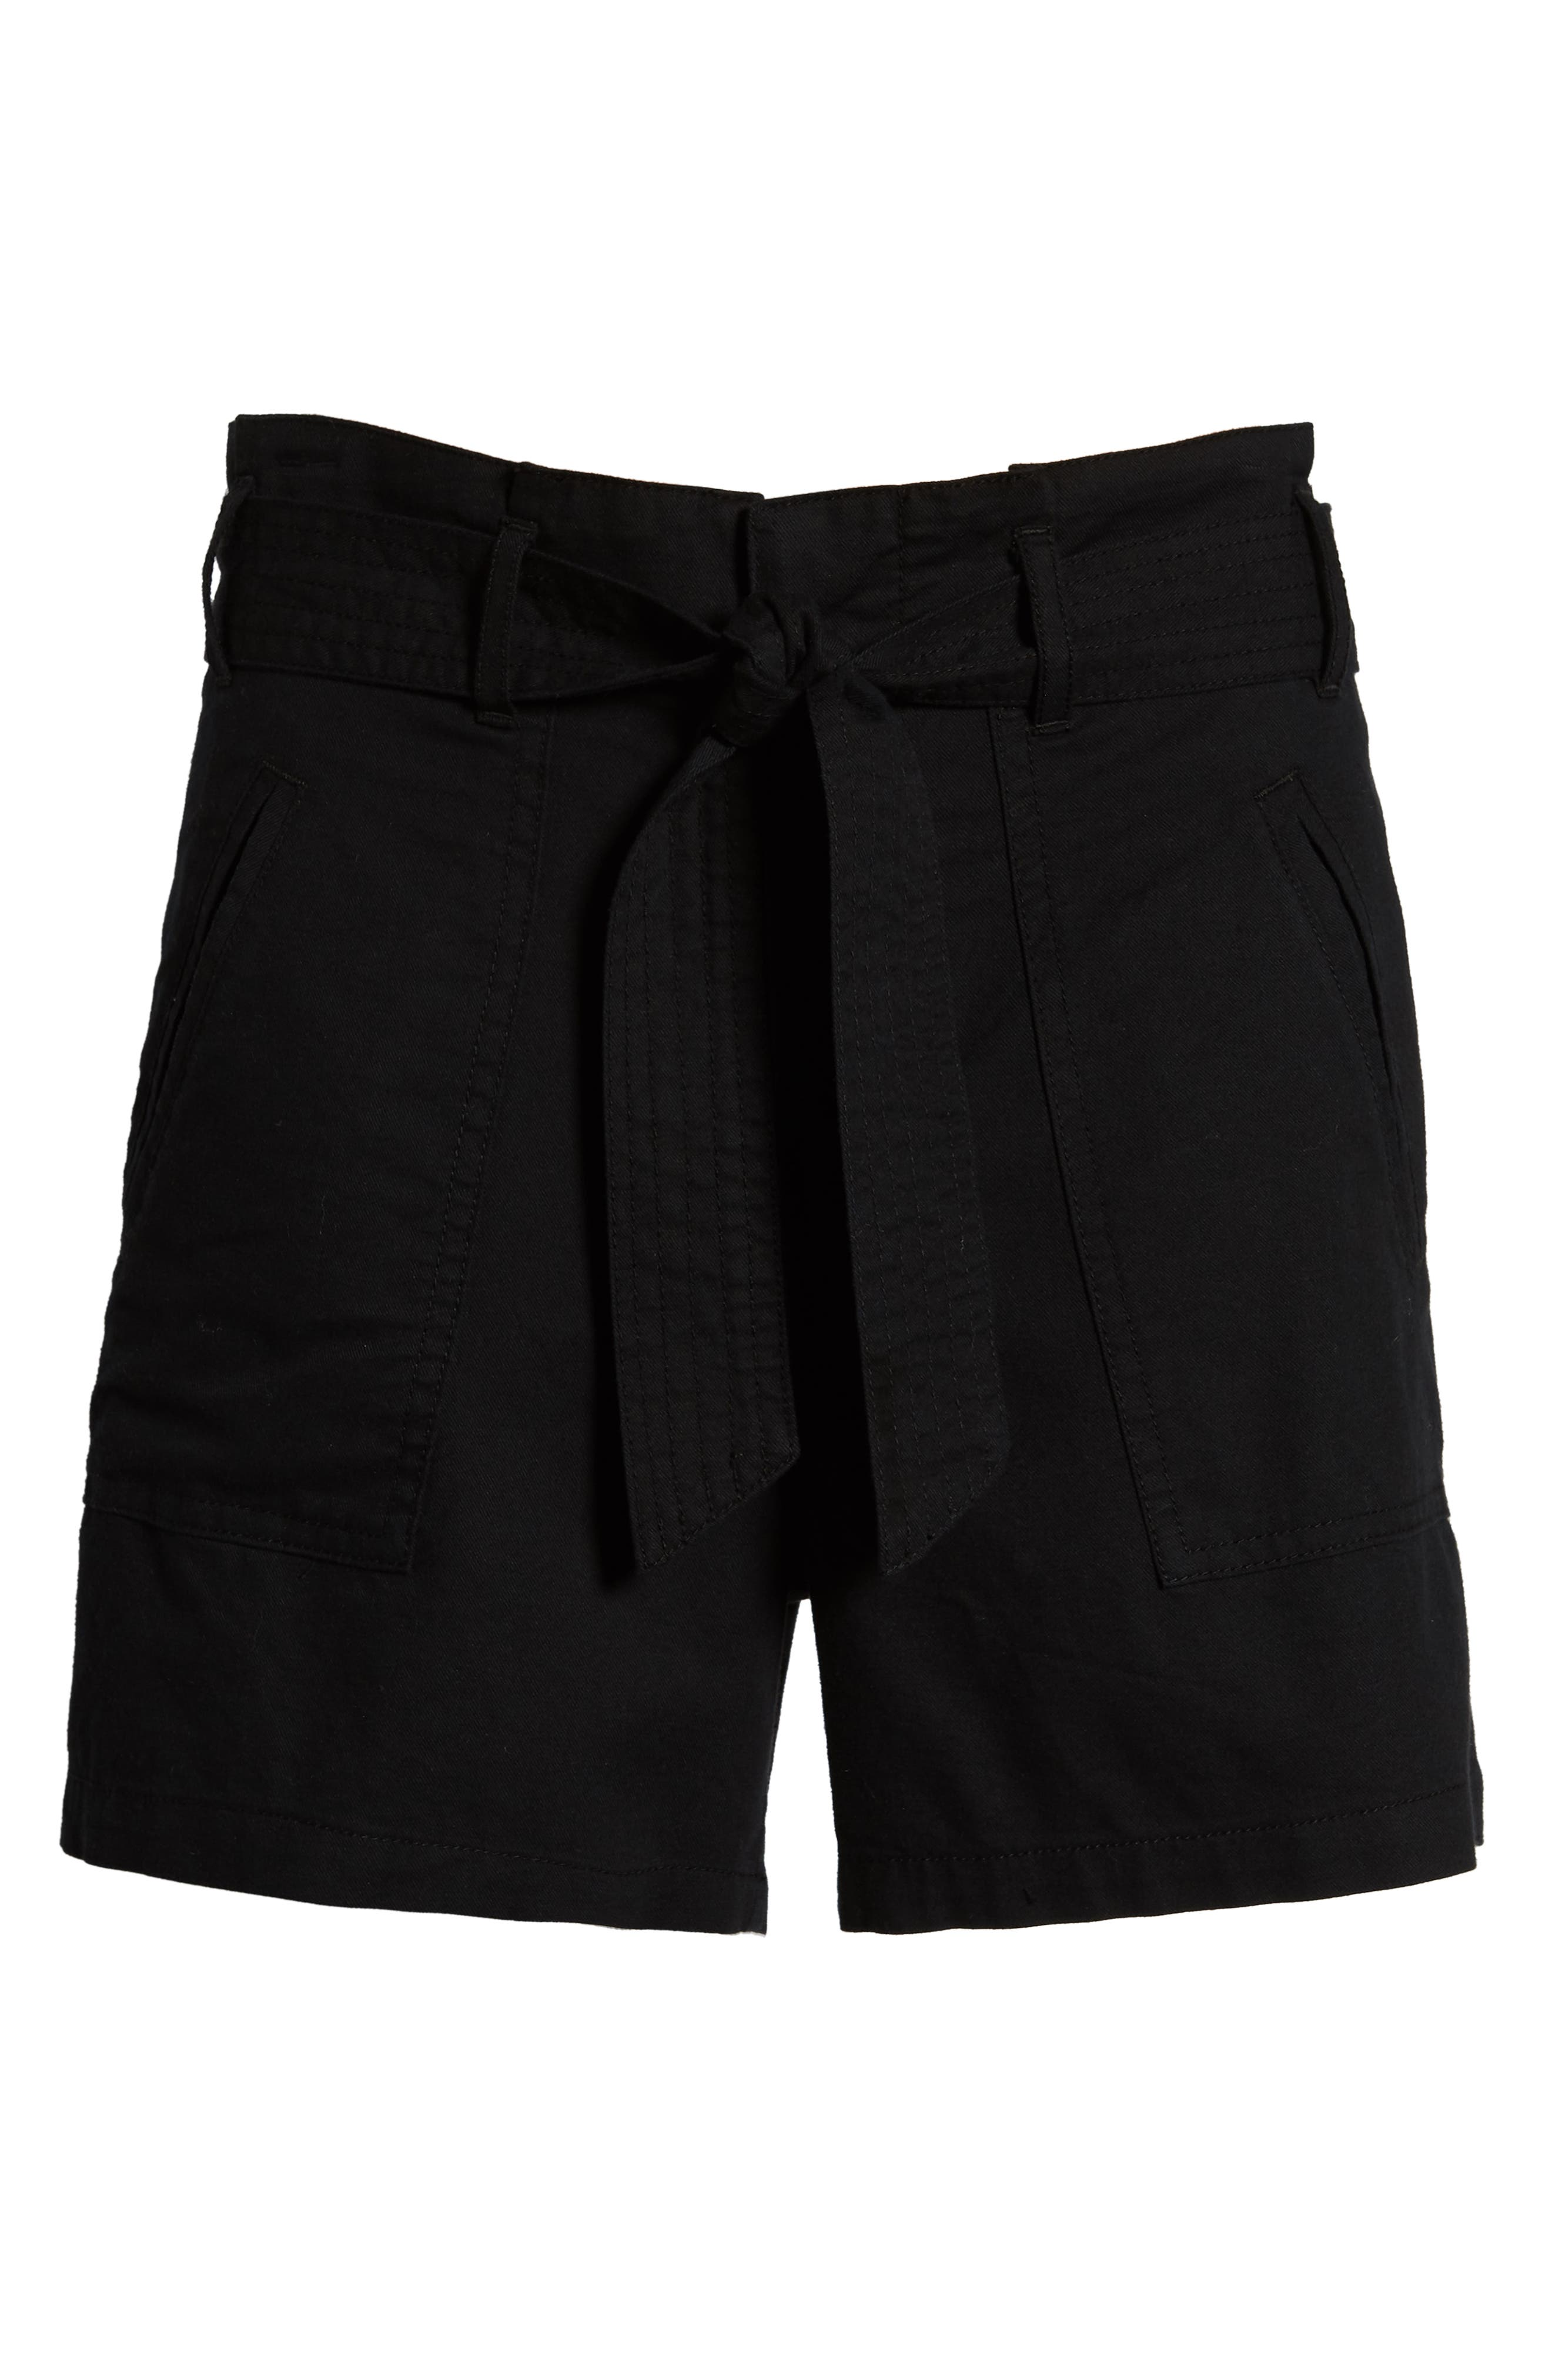 Belted Twill Shorts,                             Alternate thumbnail 6, color,                             BLACK